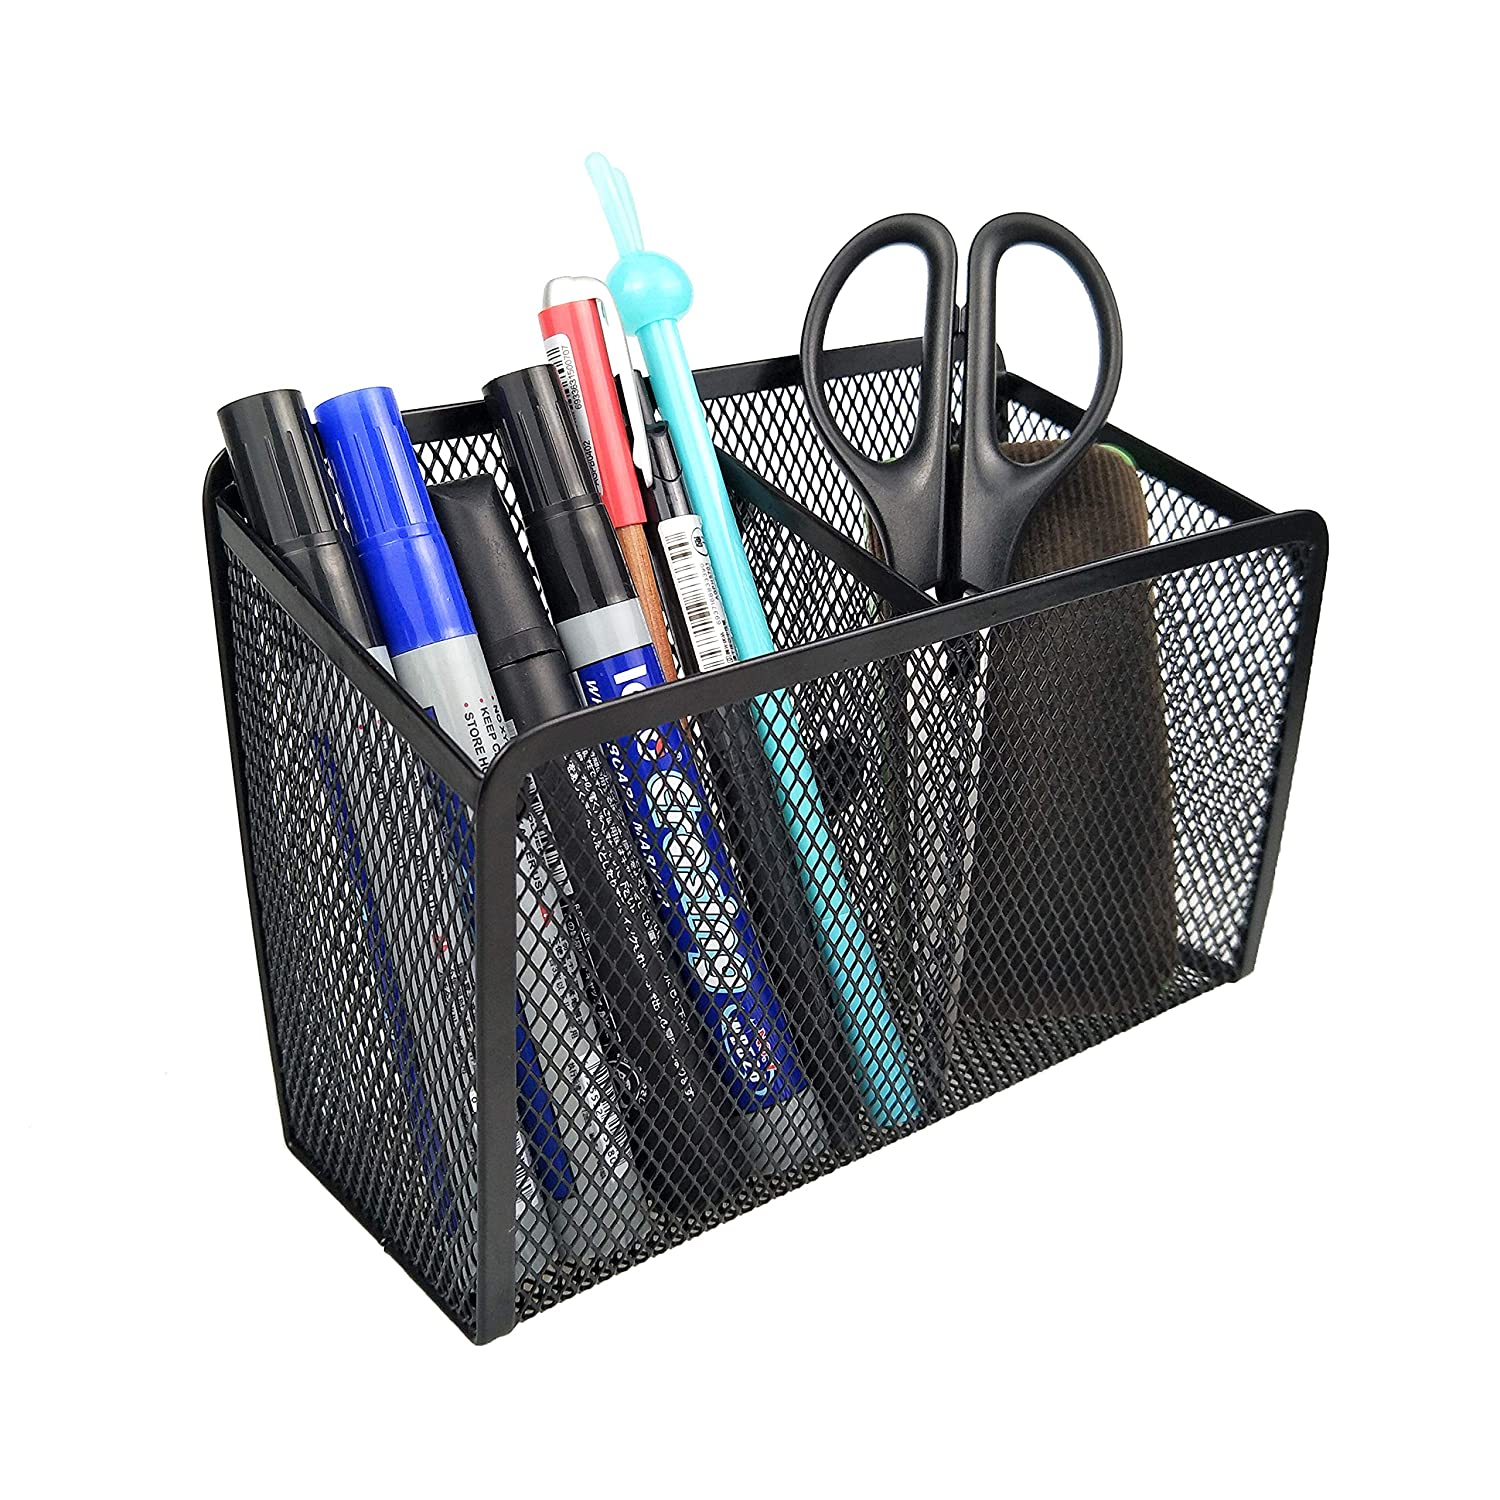 Black Wire Magnetic Pencil Holder - 2 Generous Compartments Magnetic Storage Basket Organizer - Extra Strong Magnets - to Hold Whiteboard, Refrigerator, Locker Accessories